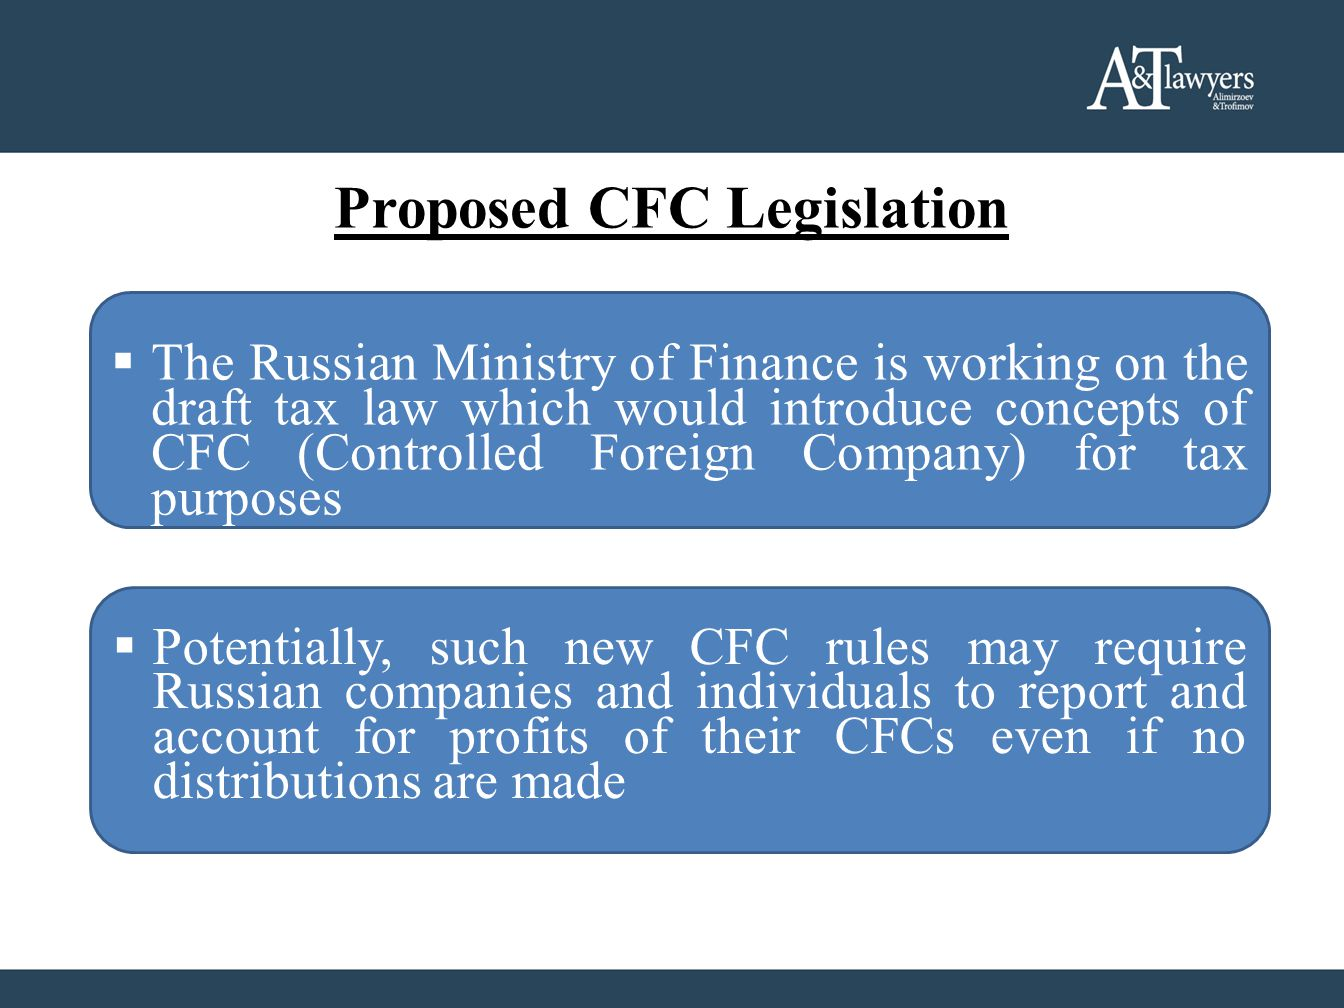 Proposed CFC Legislation  The Russian Ministry of Finance is working on the draft tax law which would introduce concepts of CFC (Controlled Foreign Company) for tax purposes  Potentially, such new CFC rules may require Russian companies and individuals to report and account for profits of their CFCs even if no distributions are made